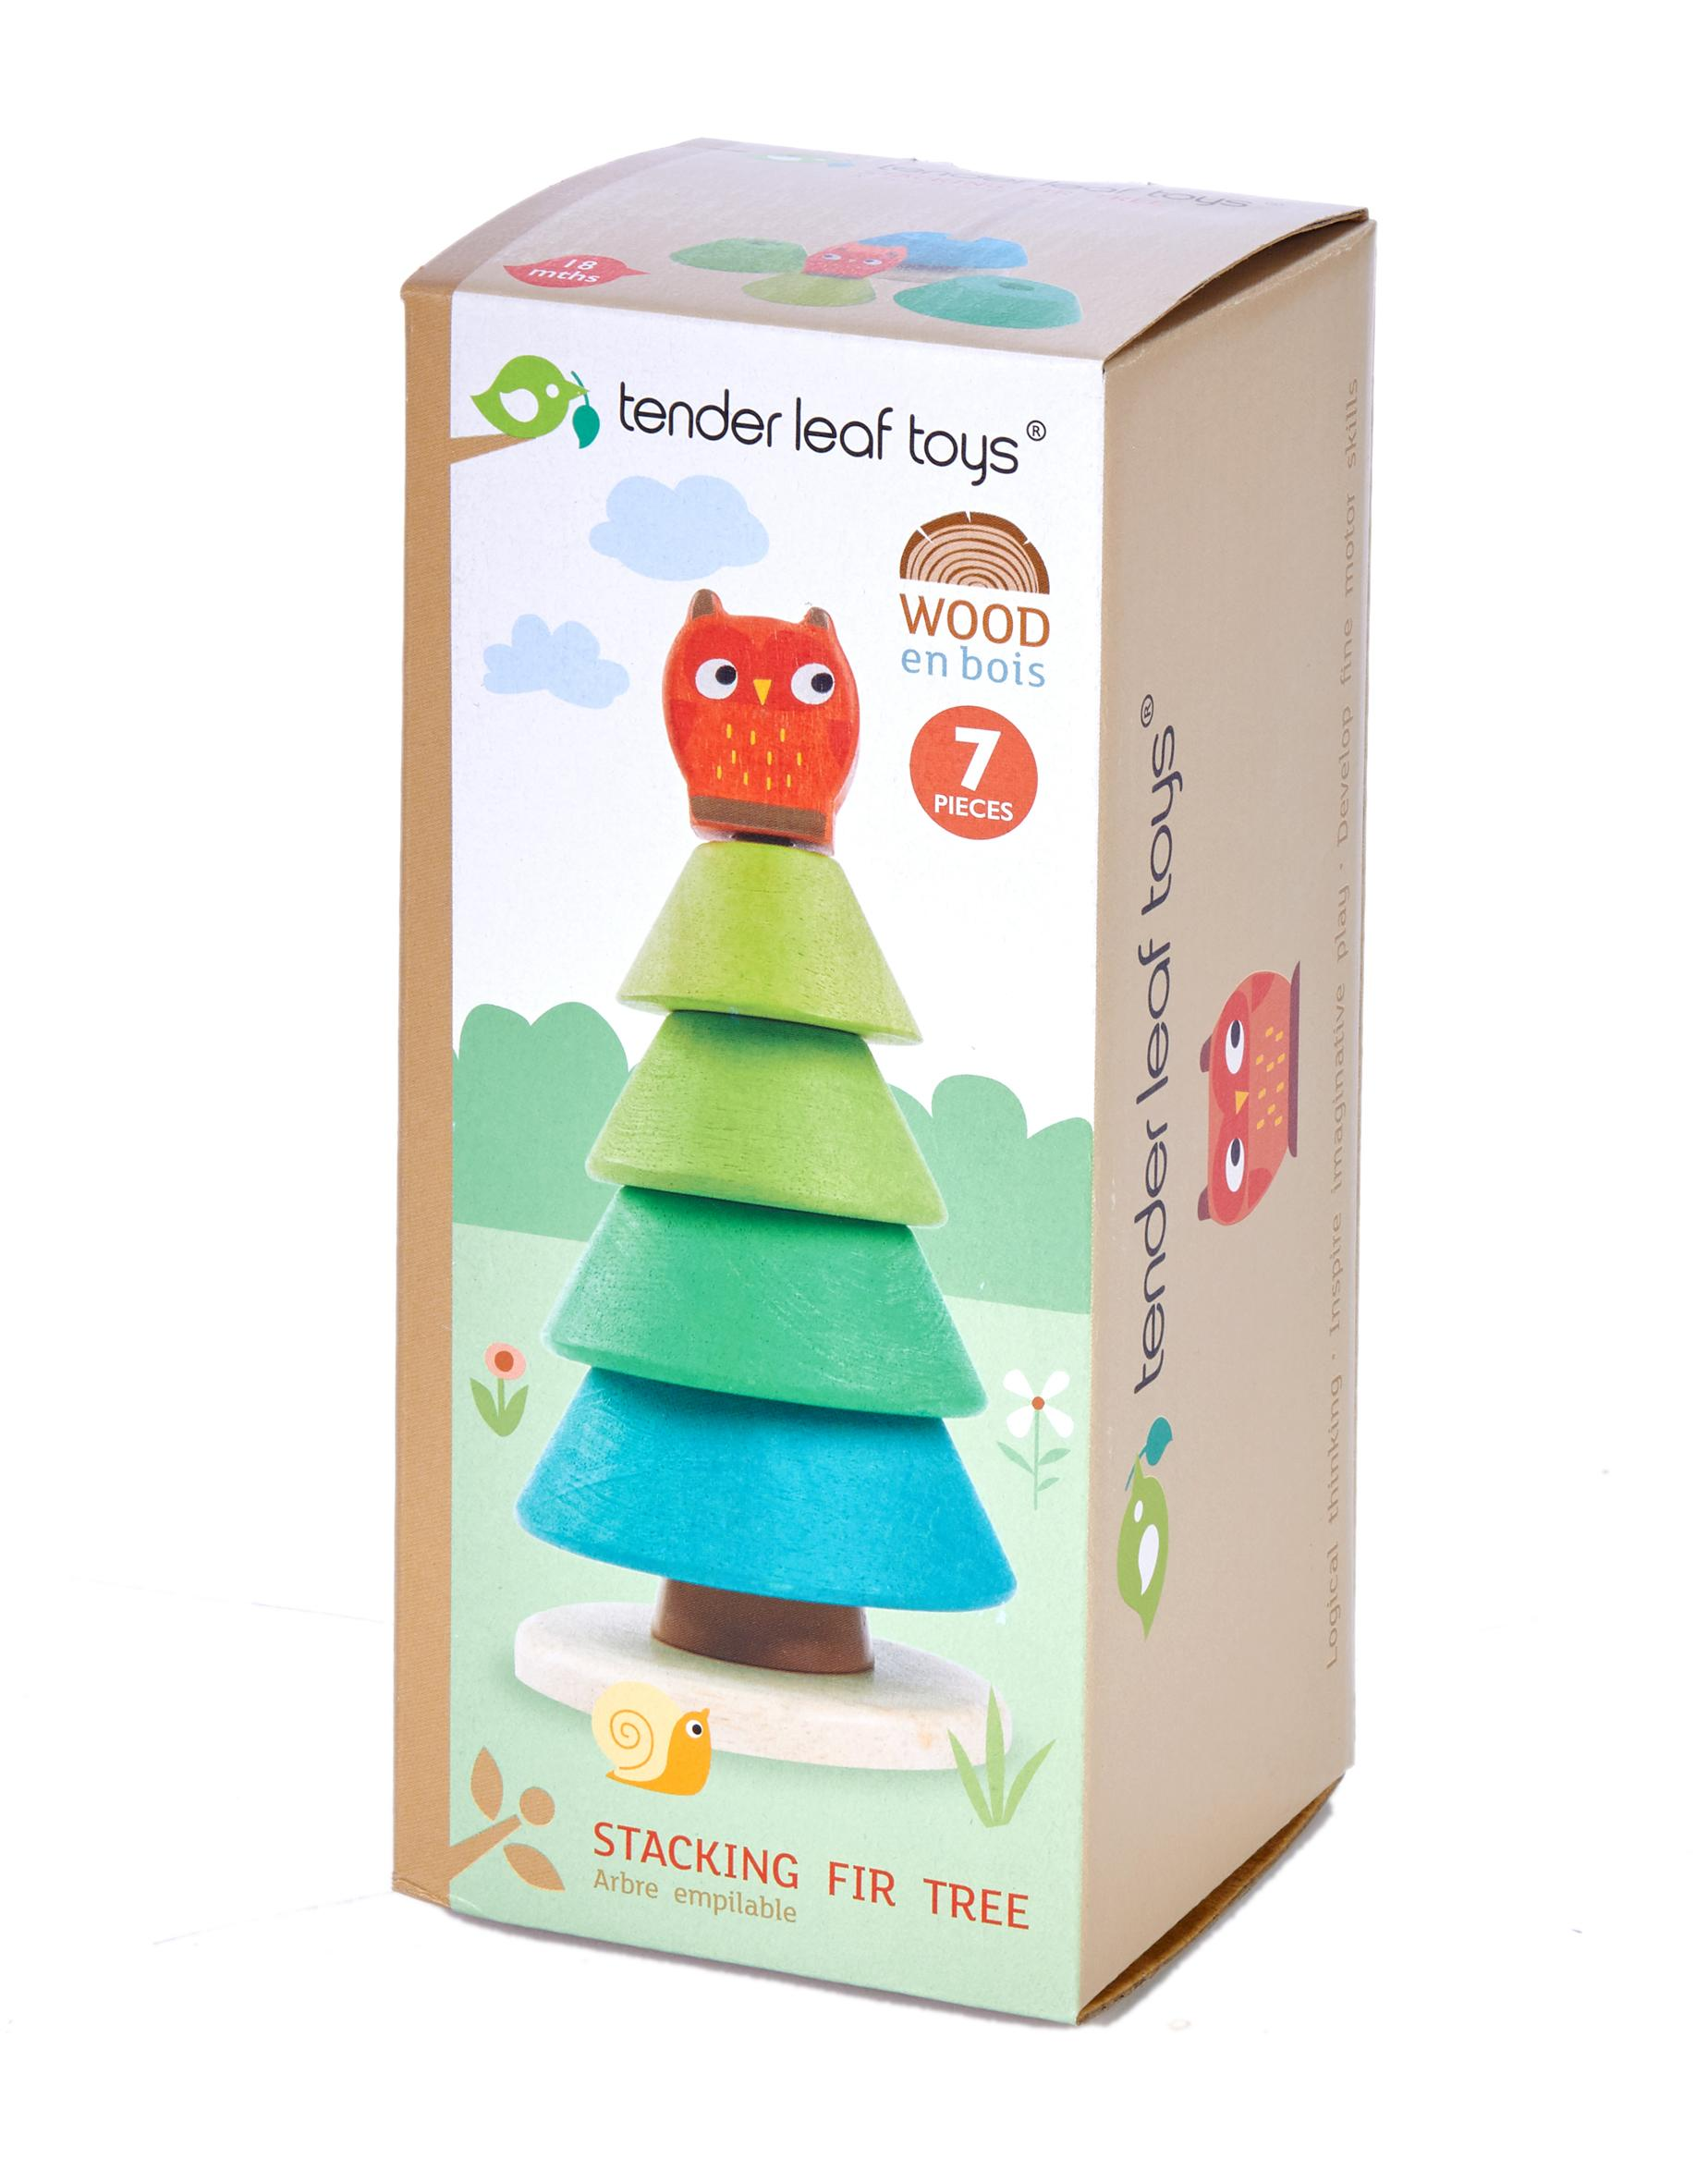 New Wooden Toy Stacking Fir Tree Topped with a Red Owl #4